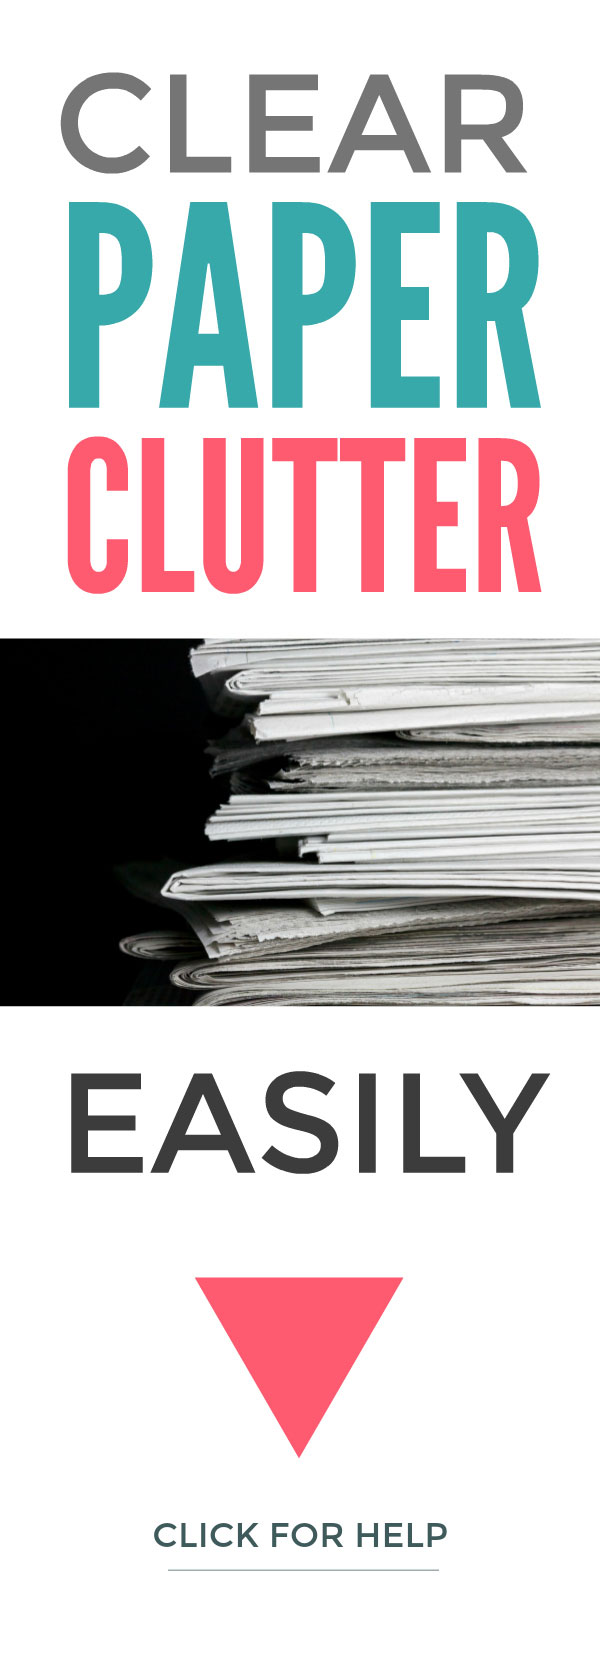 Clear paper clutter easily - declutter all your piles of paper with these simple step by step tips so you can focus on the important stuff that matters most #declutter #clutter #simplify #organize